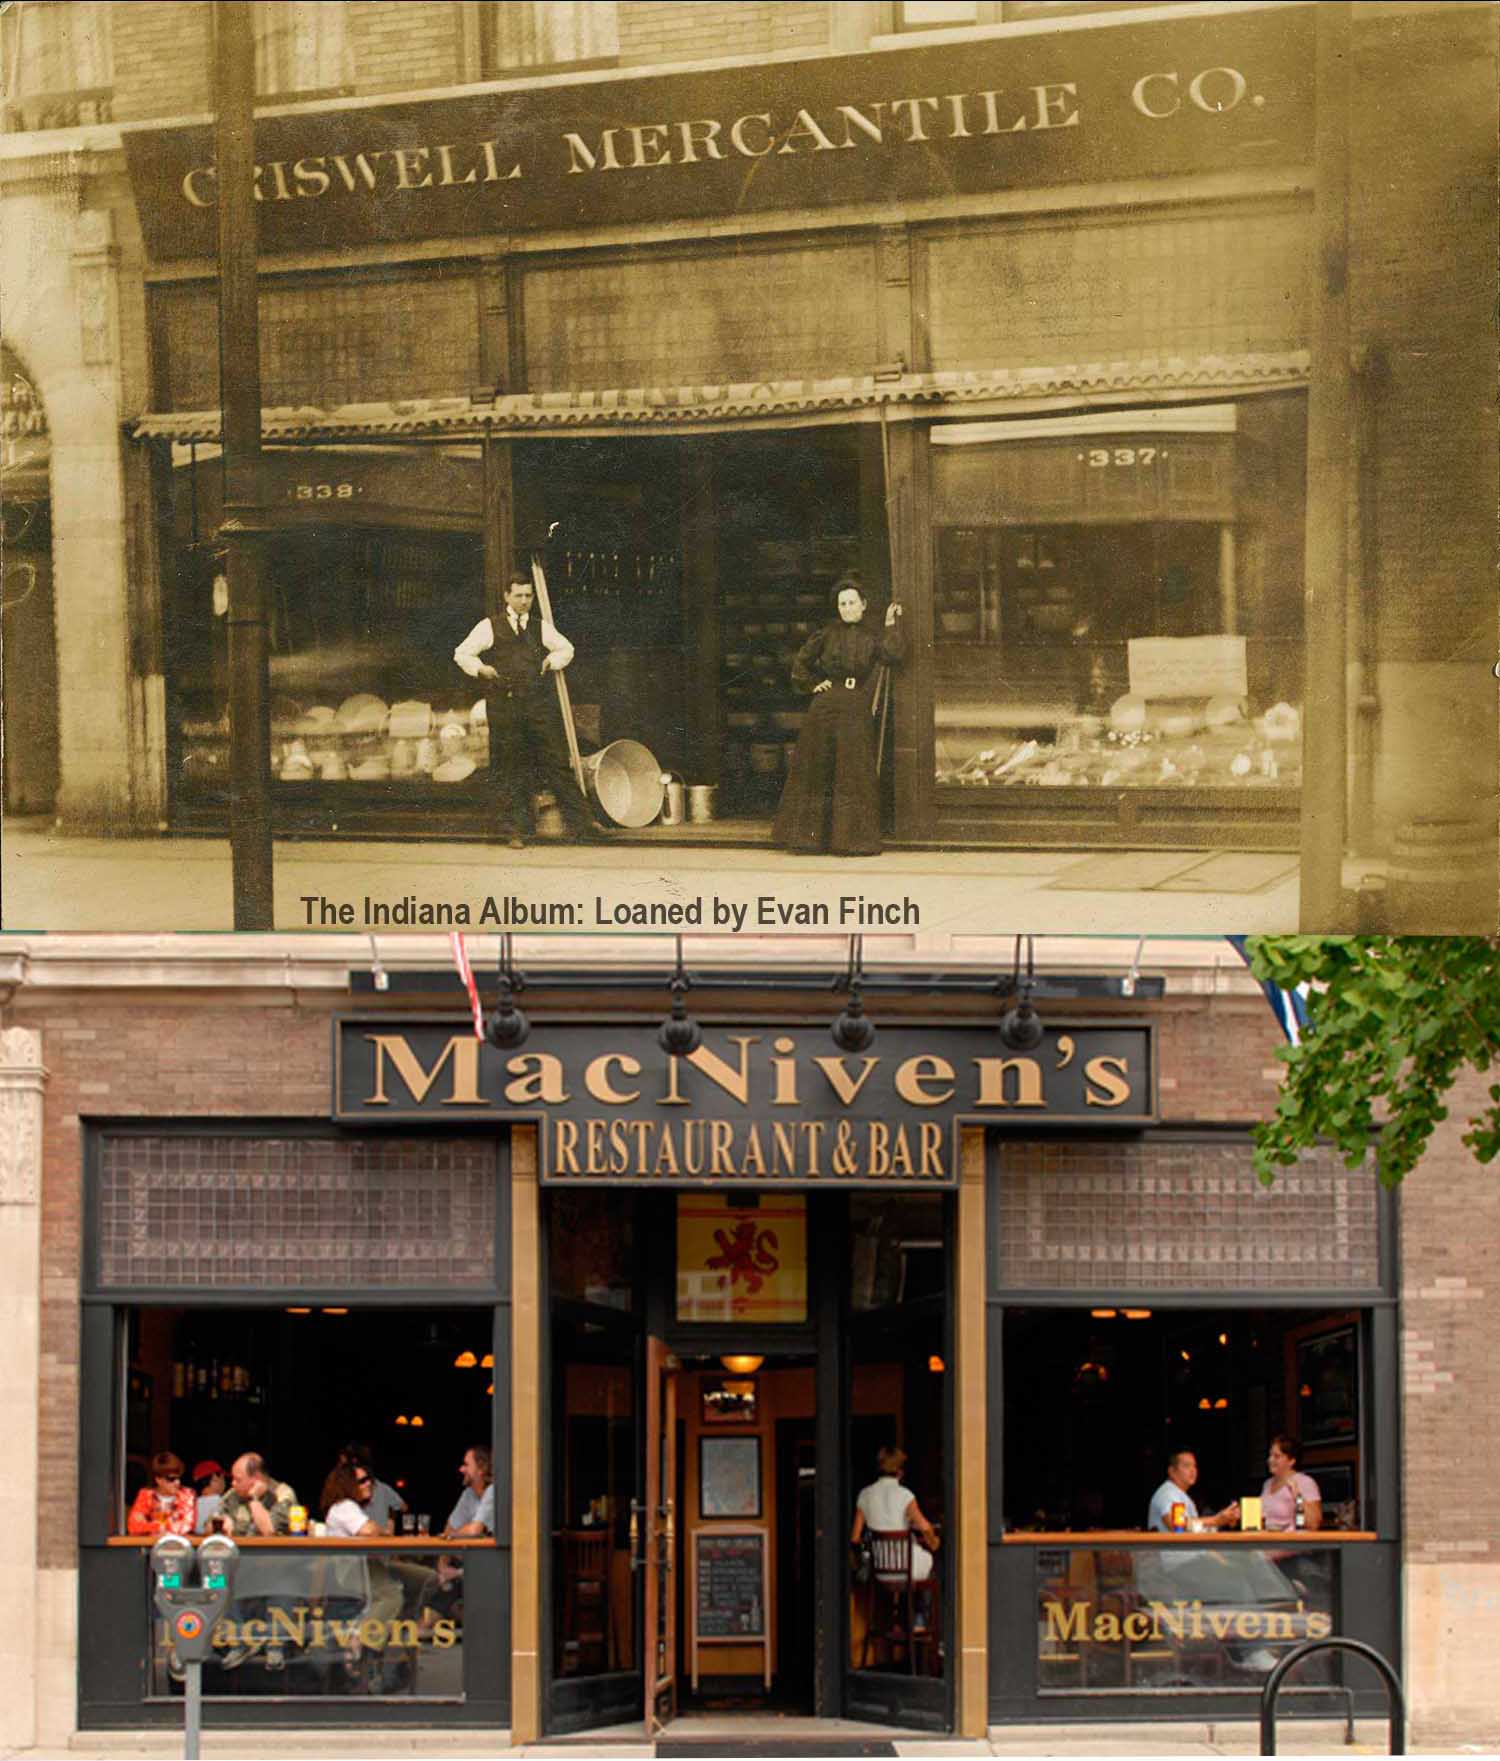 Then & Now: Criswell Mercantile Company/MacNiven's Restaurant & Bar, 337-339 Massachusetts Avenue